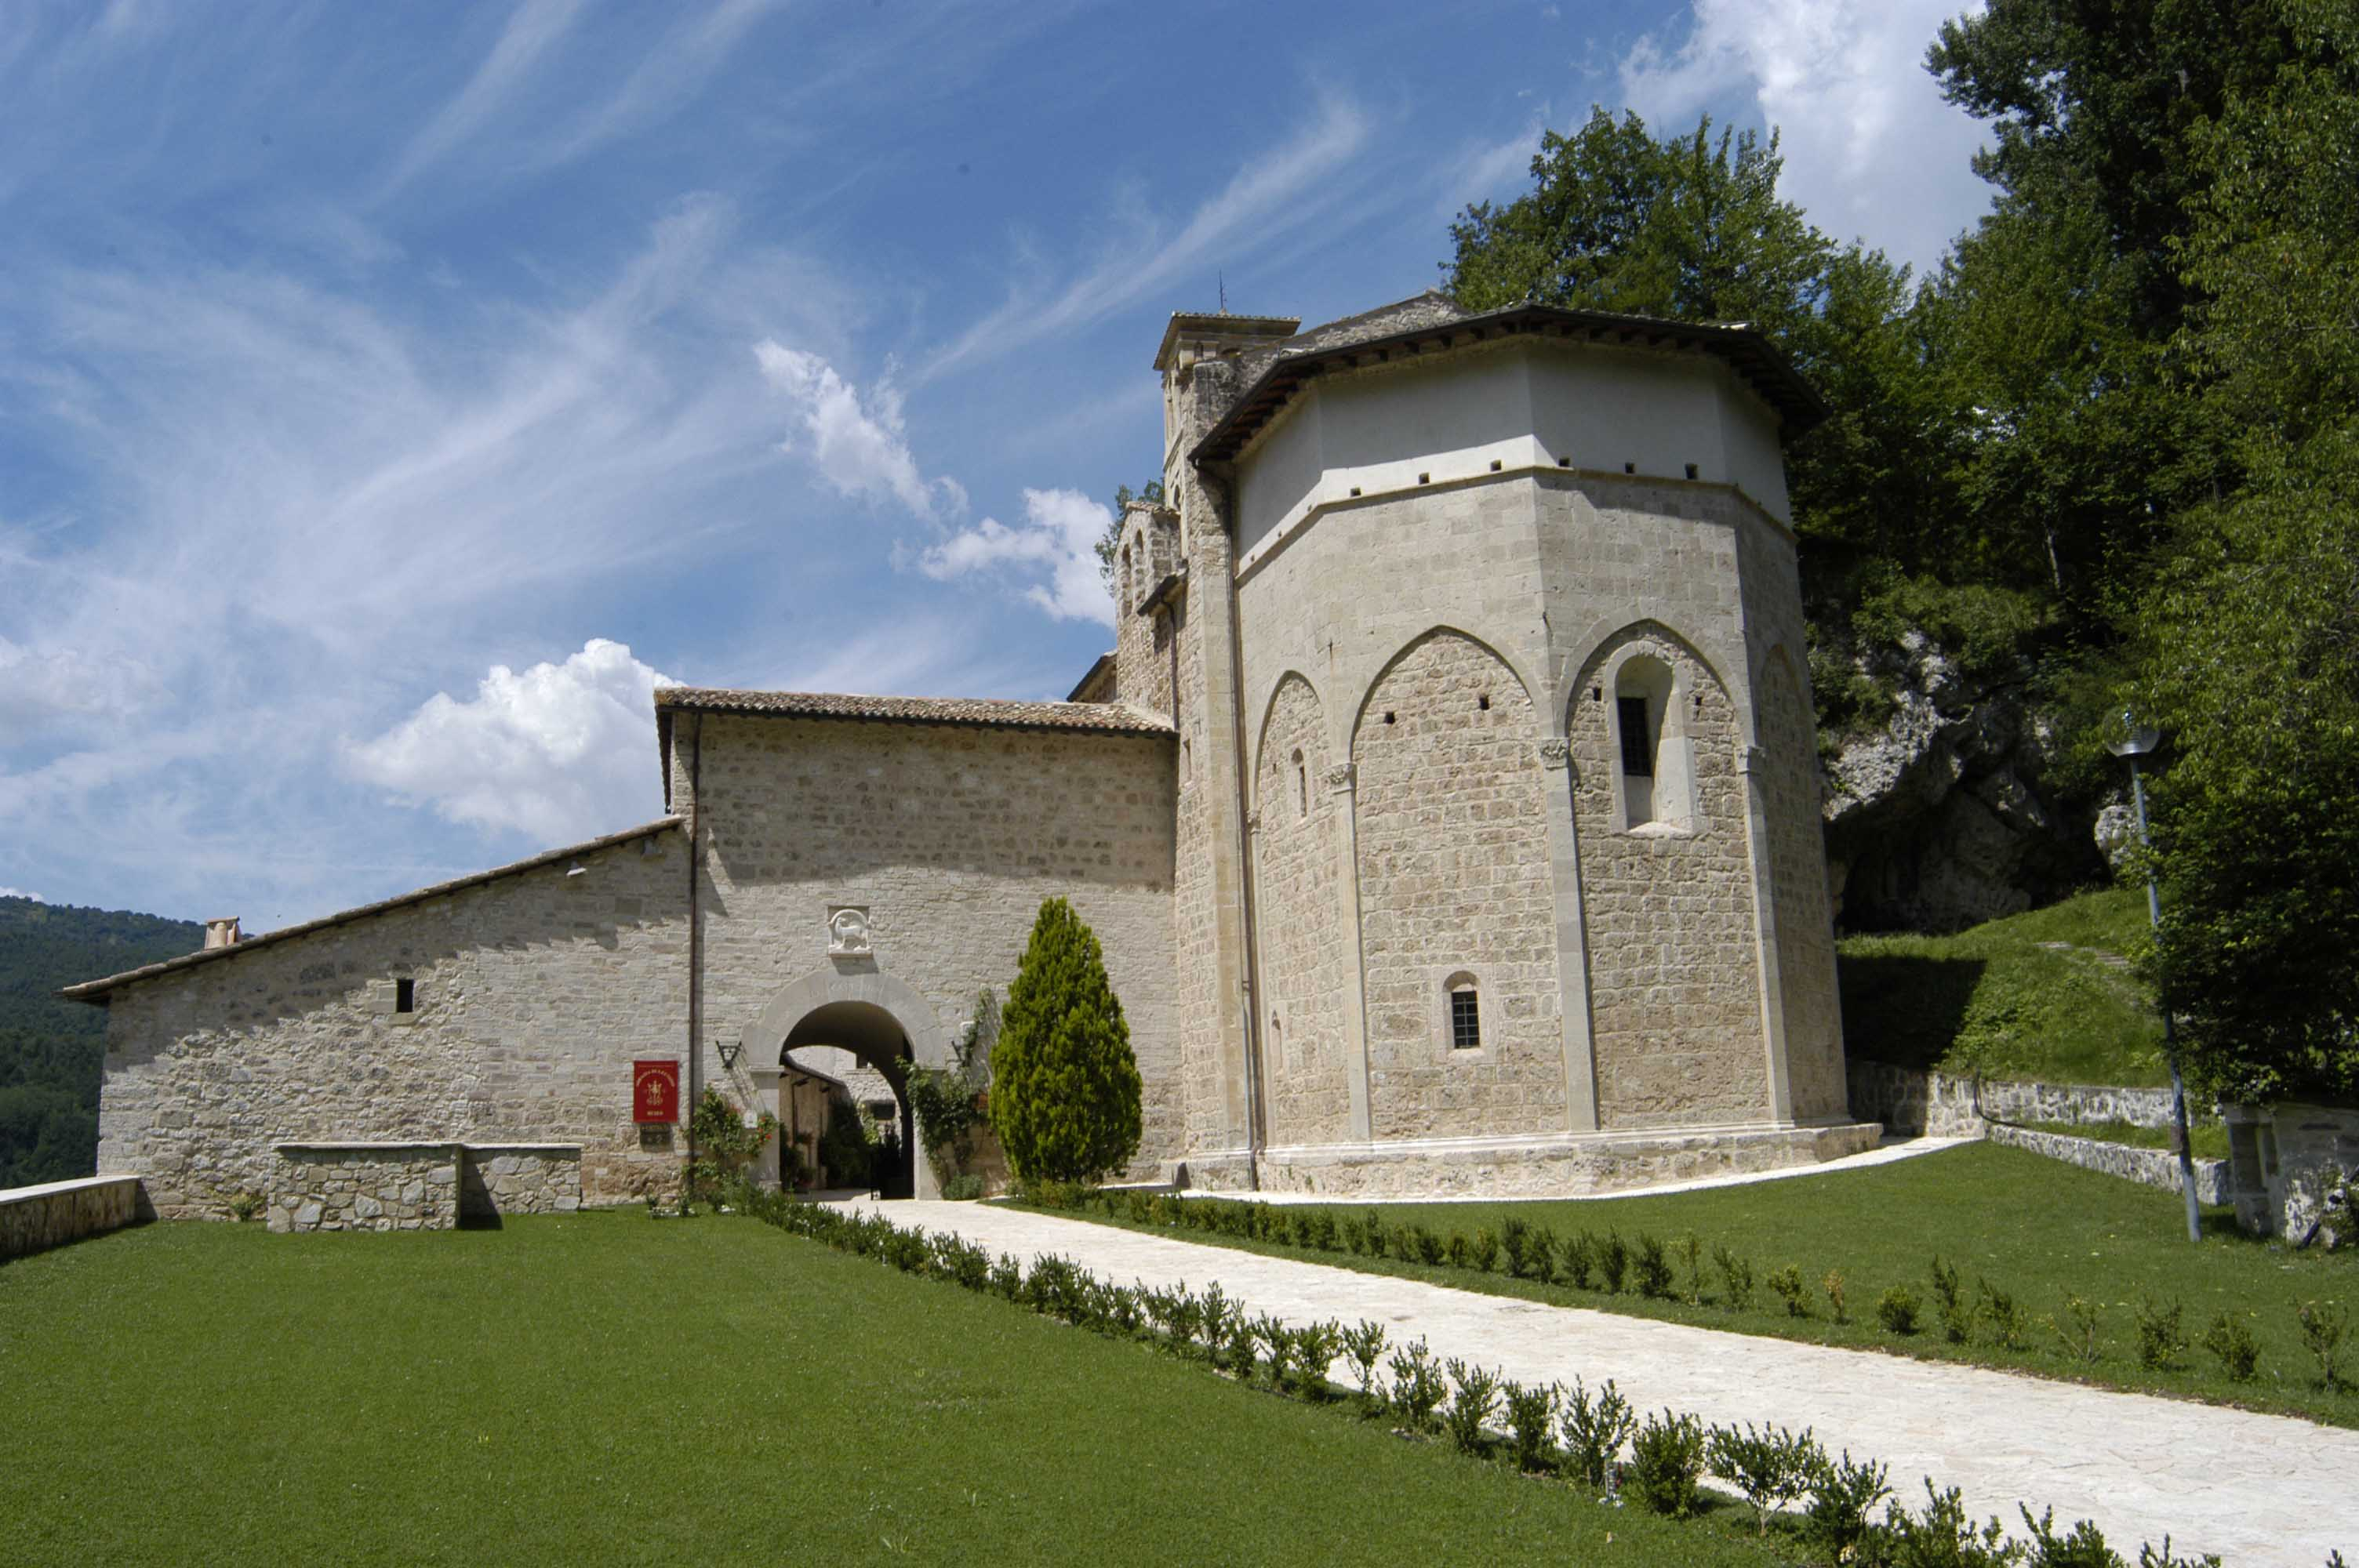 Excursion in the Valnerina – Norcia – Abbey of Sant'Eutizio